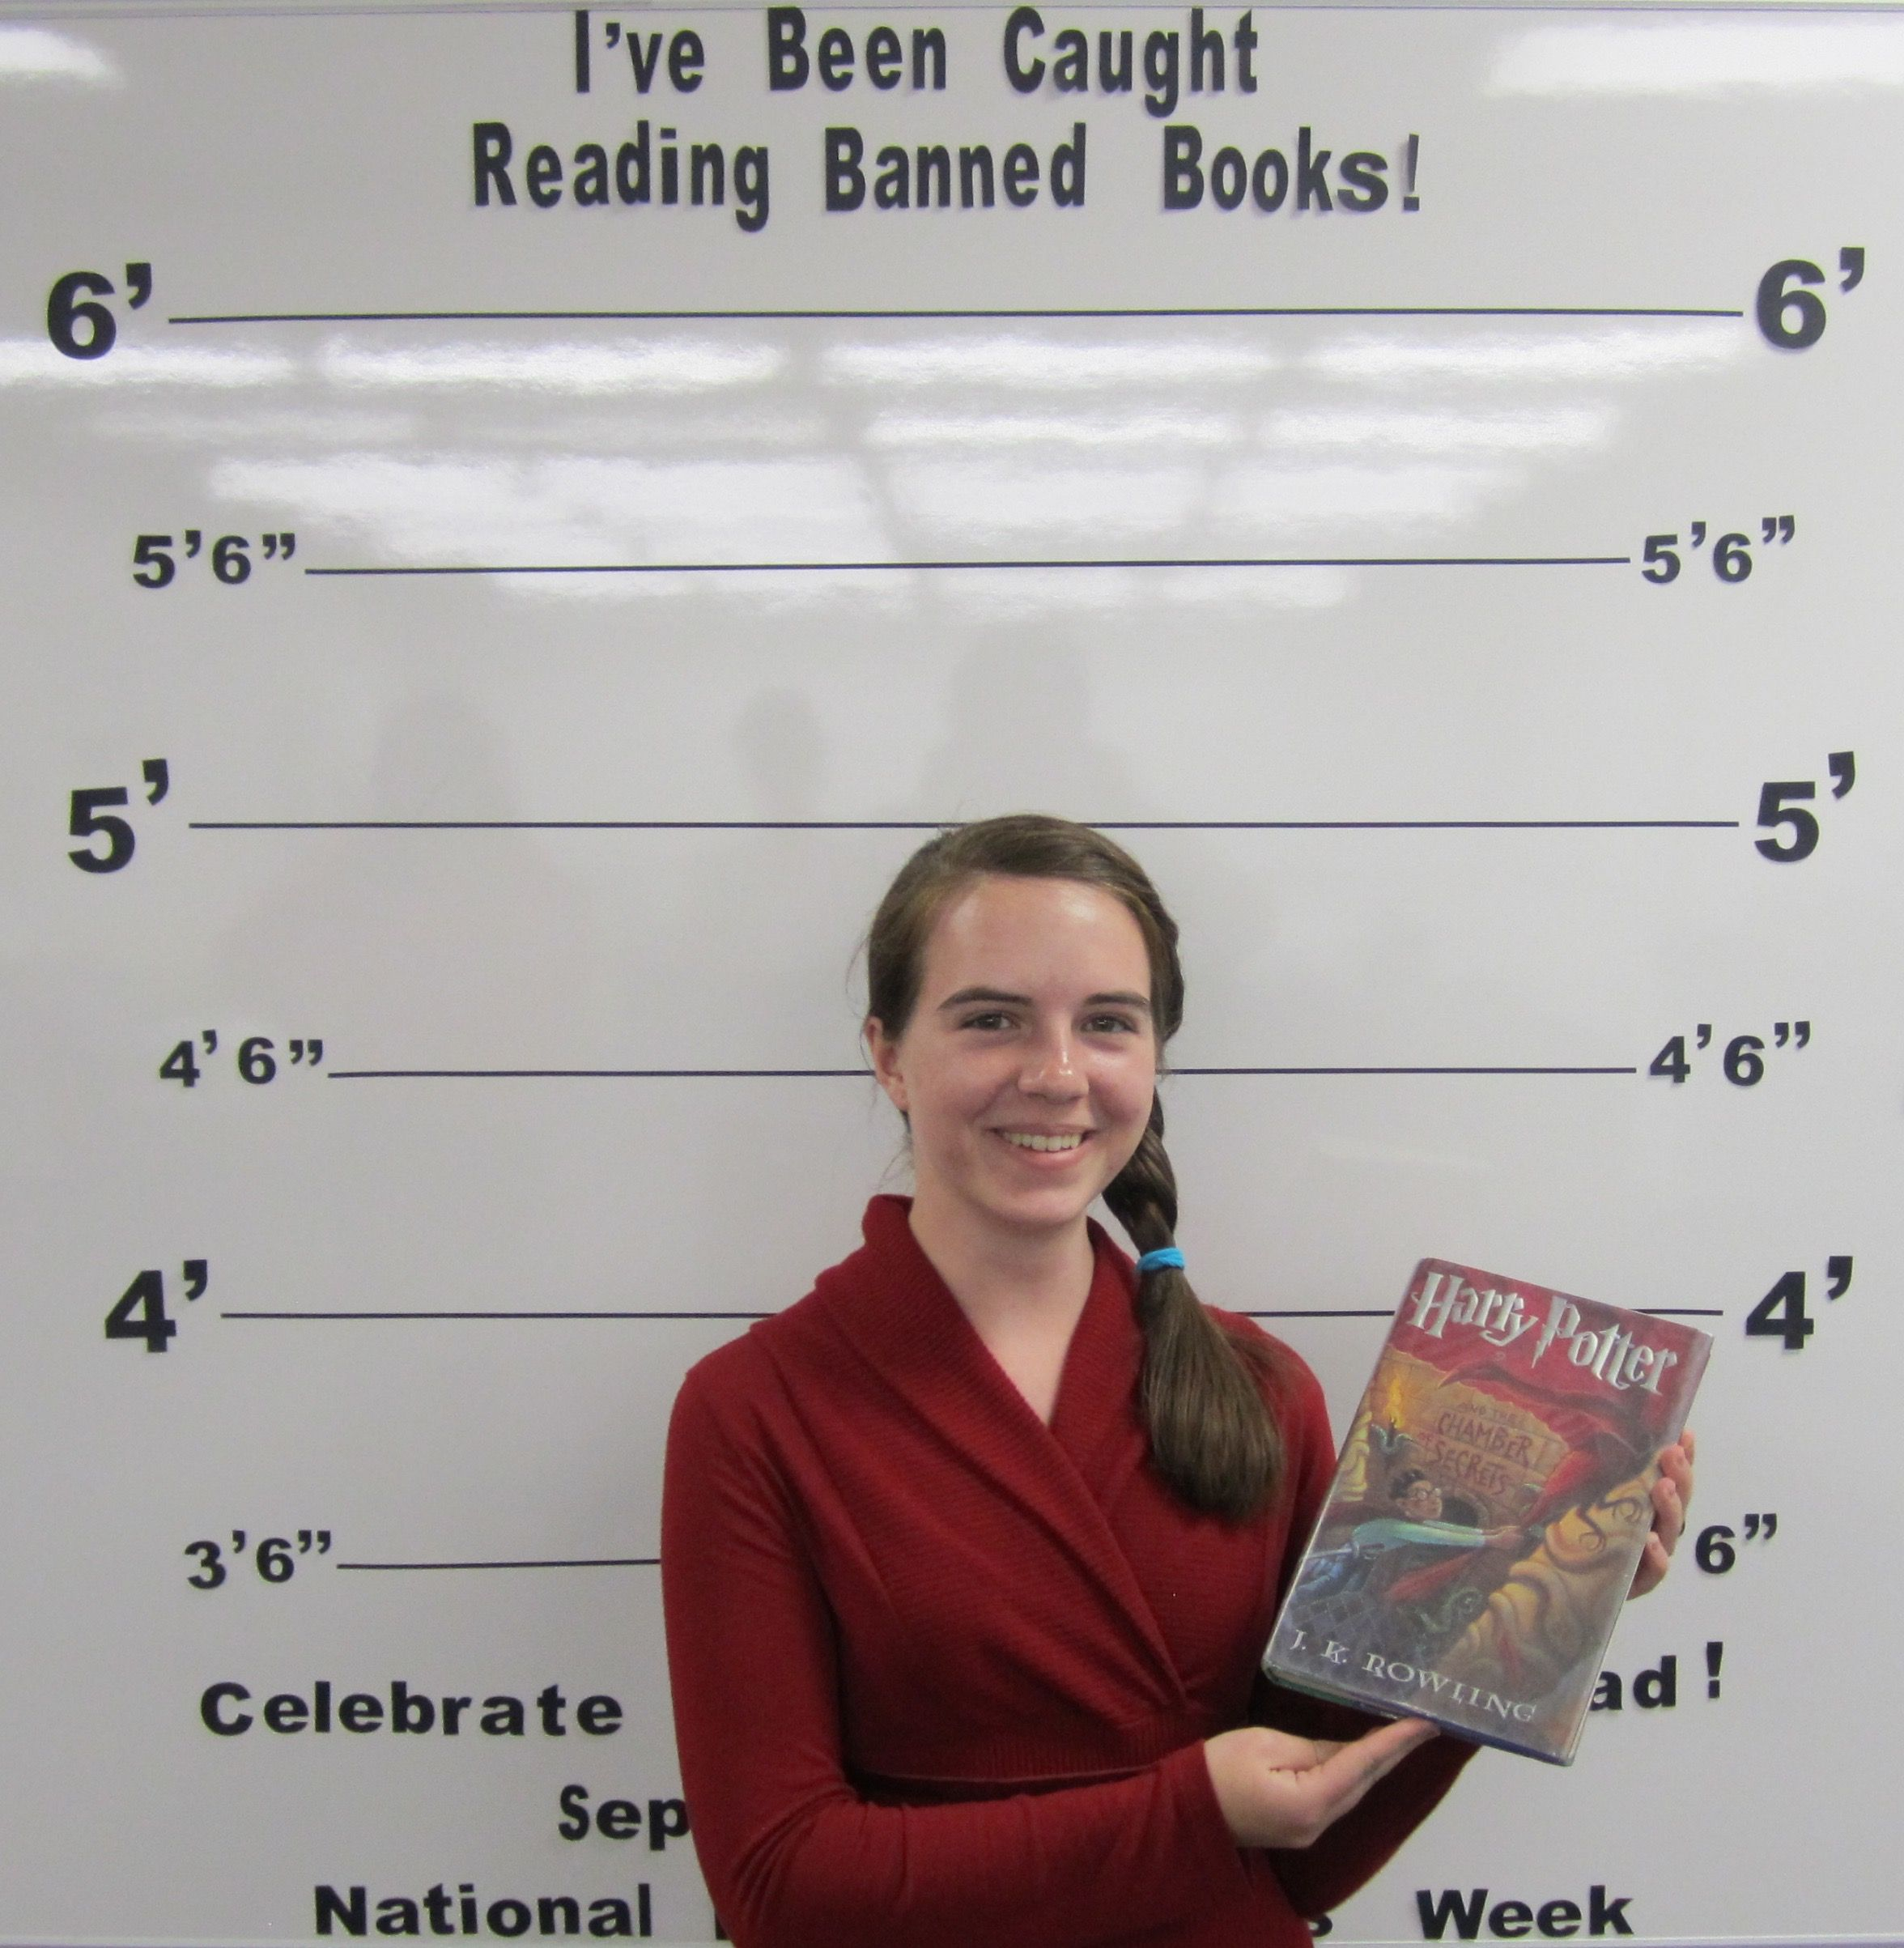 "September 2015 - Banned Books Week - ""I've Been Caught Reading Banned Books!"" - September 27th thru October 3rd - USU Eastern/Price Student"